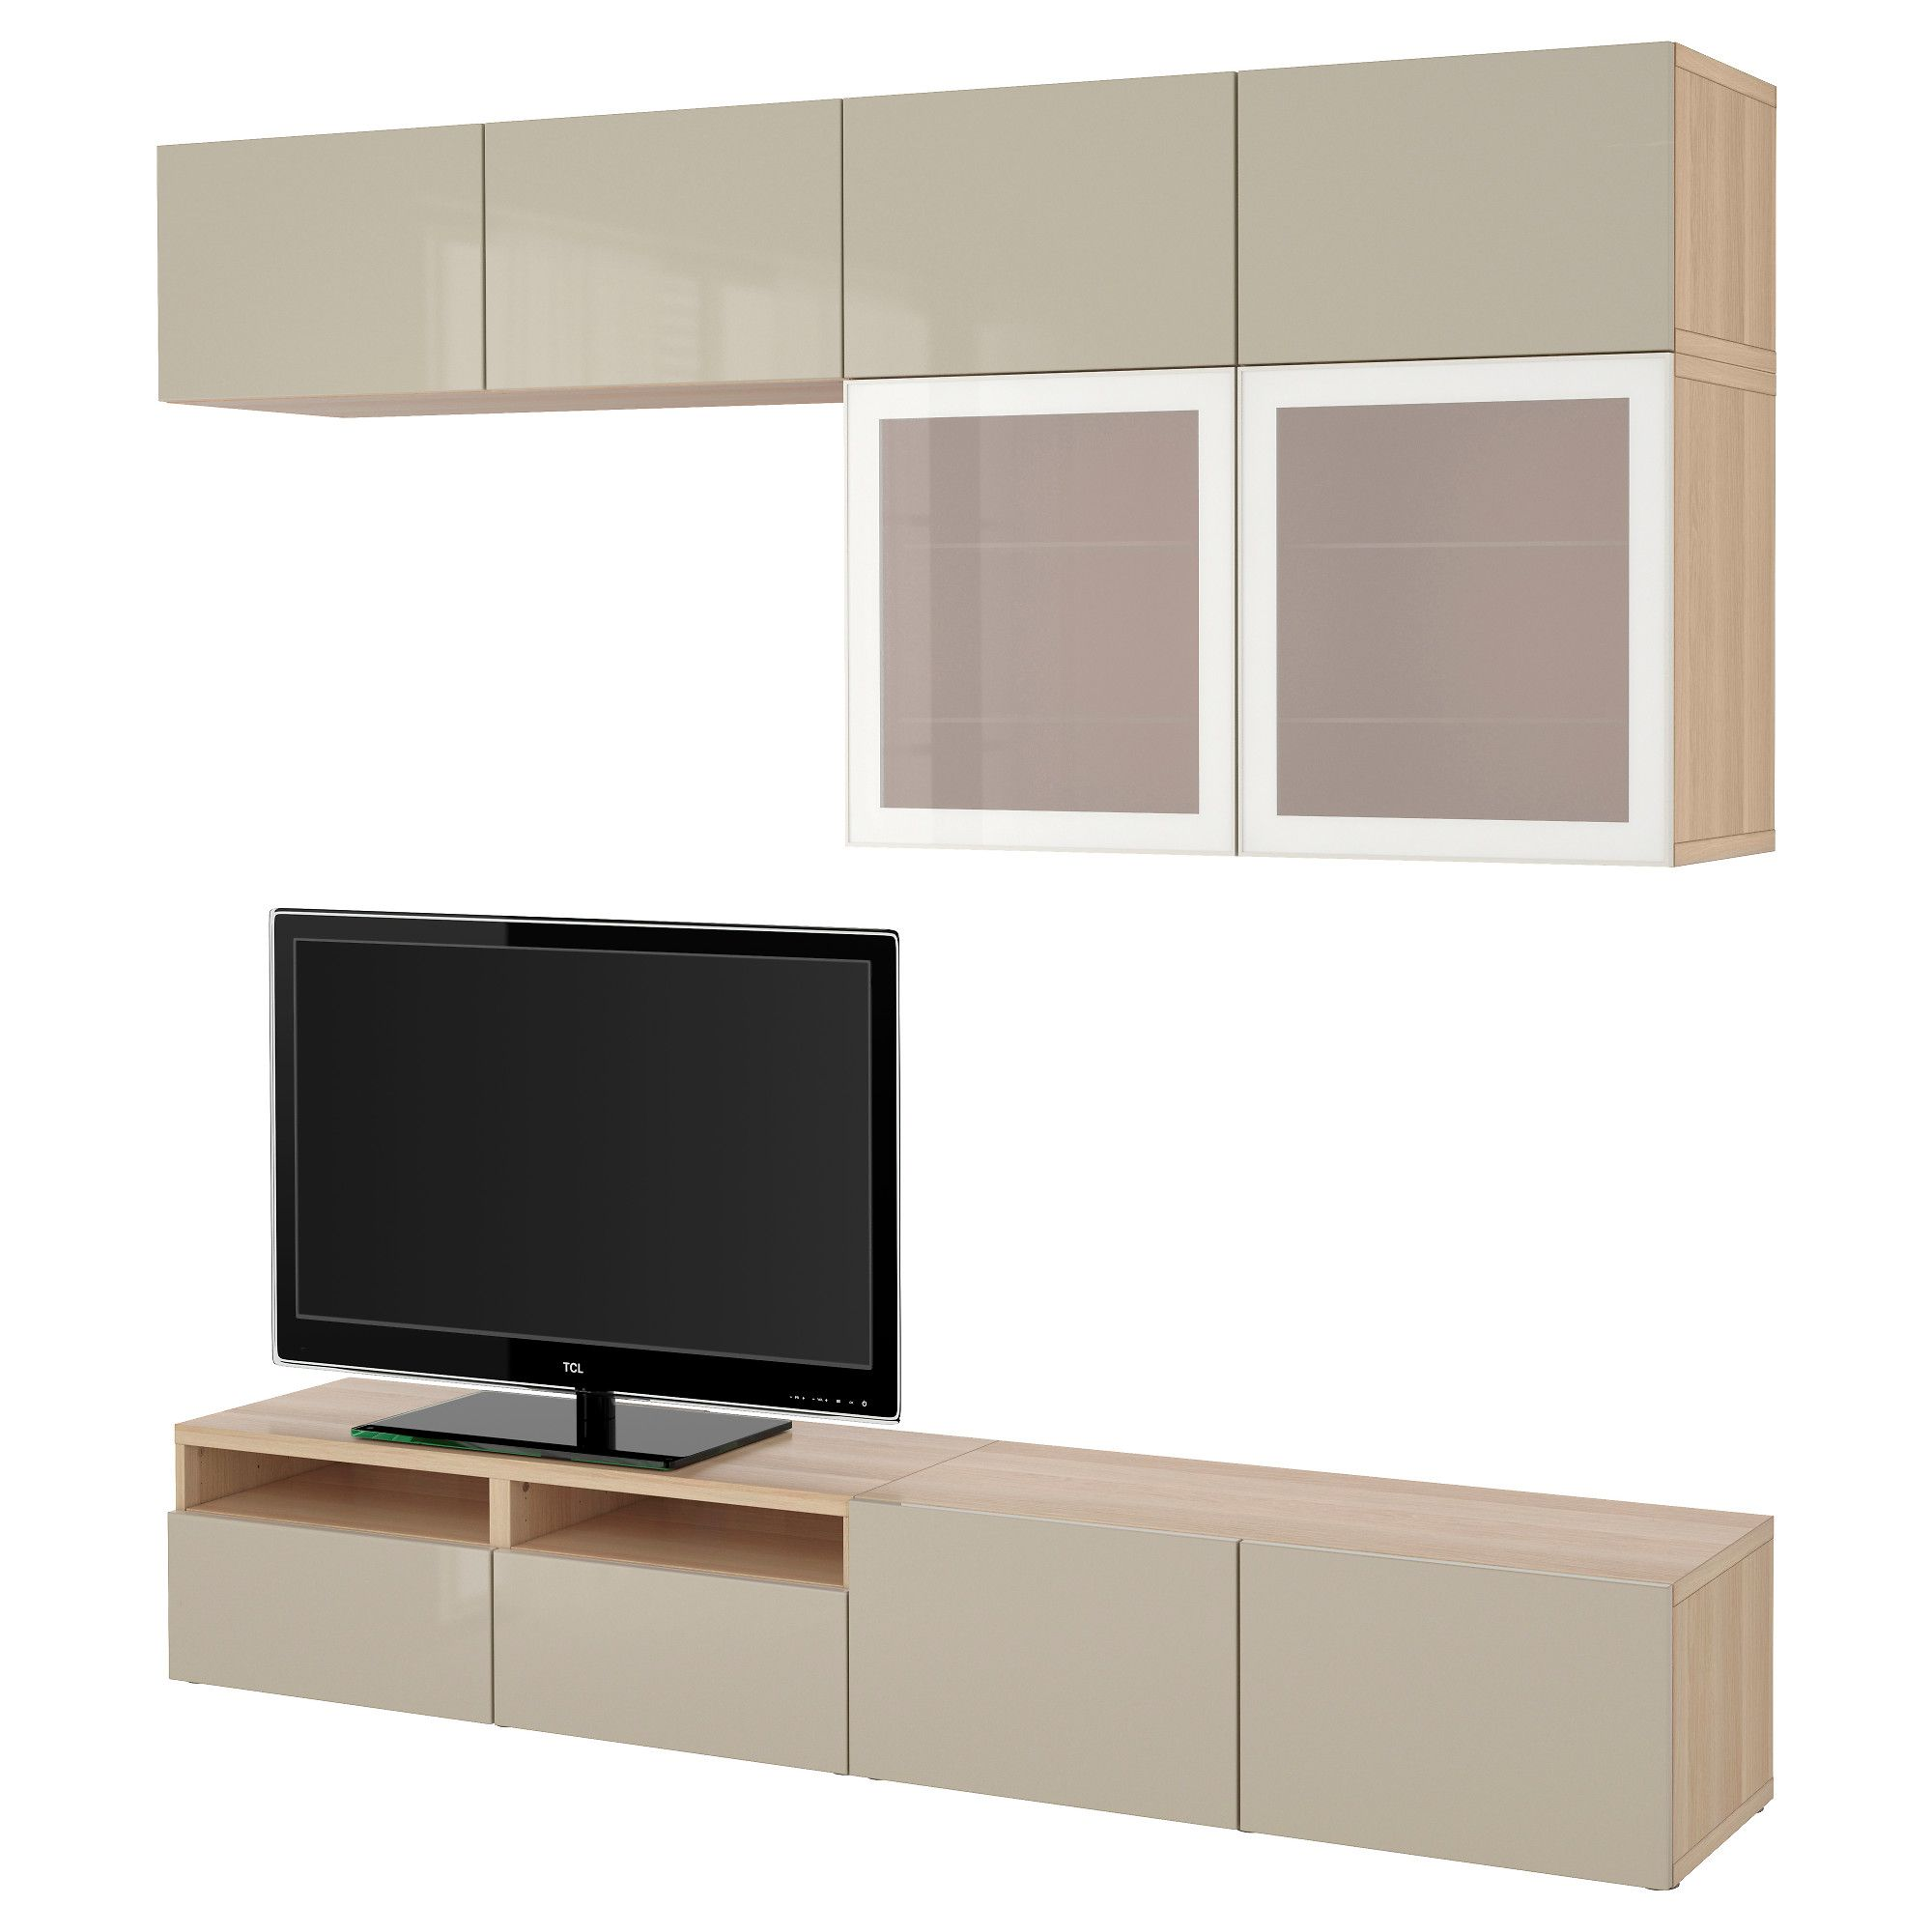 Color birch effect black brown high gloss gray turquoise white white - Best Tv Storage Combination Glass Doors White Stained Oak Effect Selsviken High